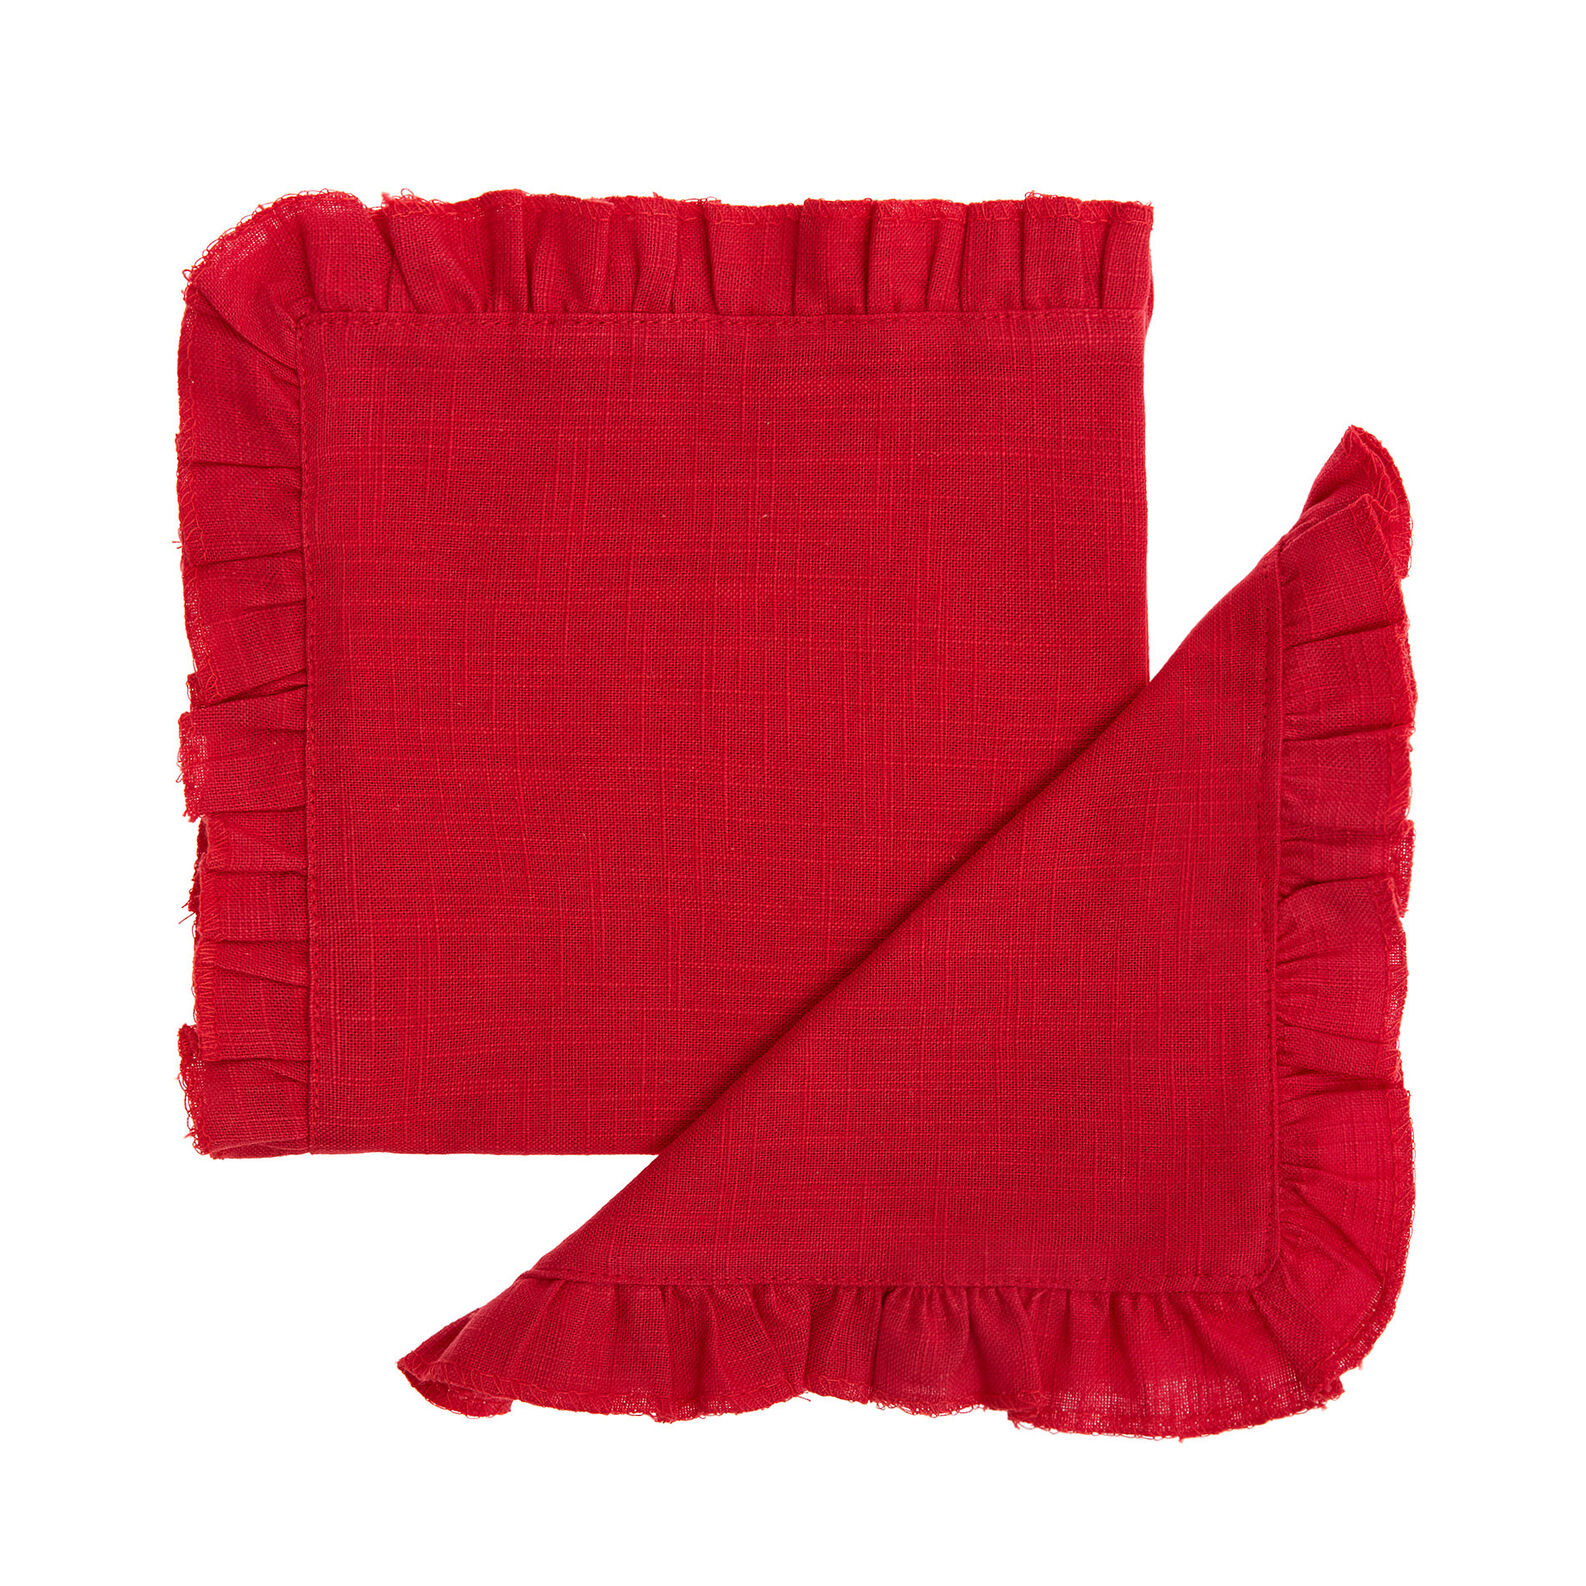 Set of 2 napkins in 100% cotton with flounce trim